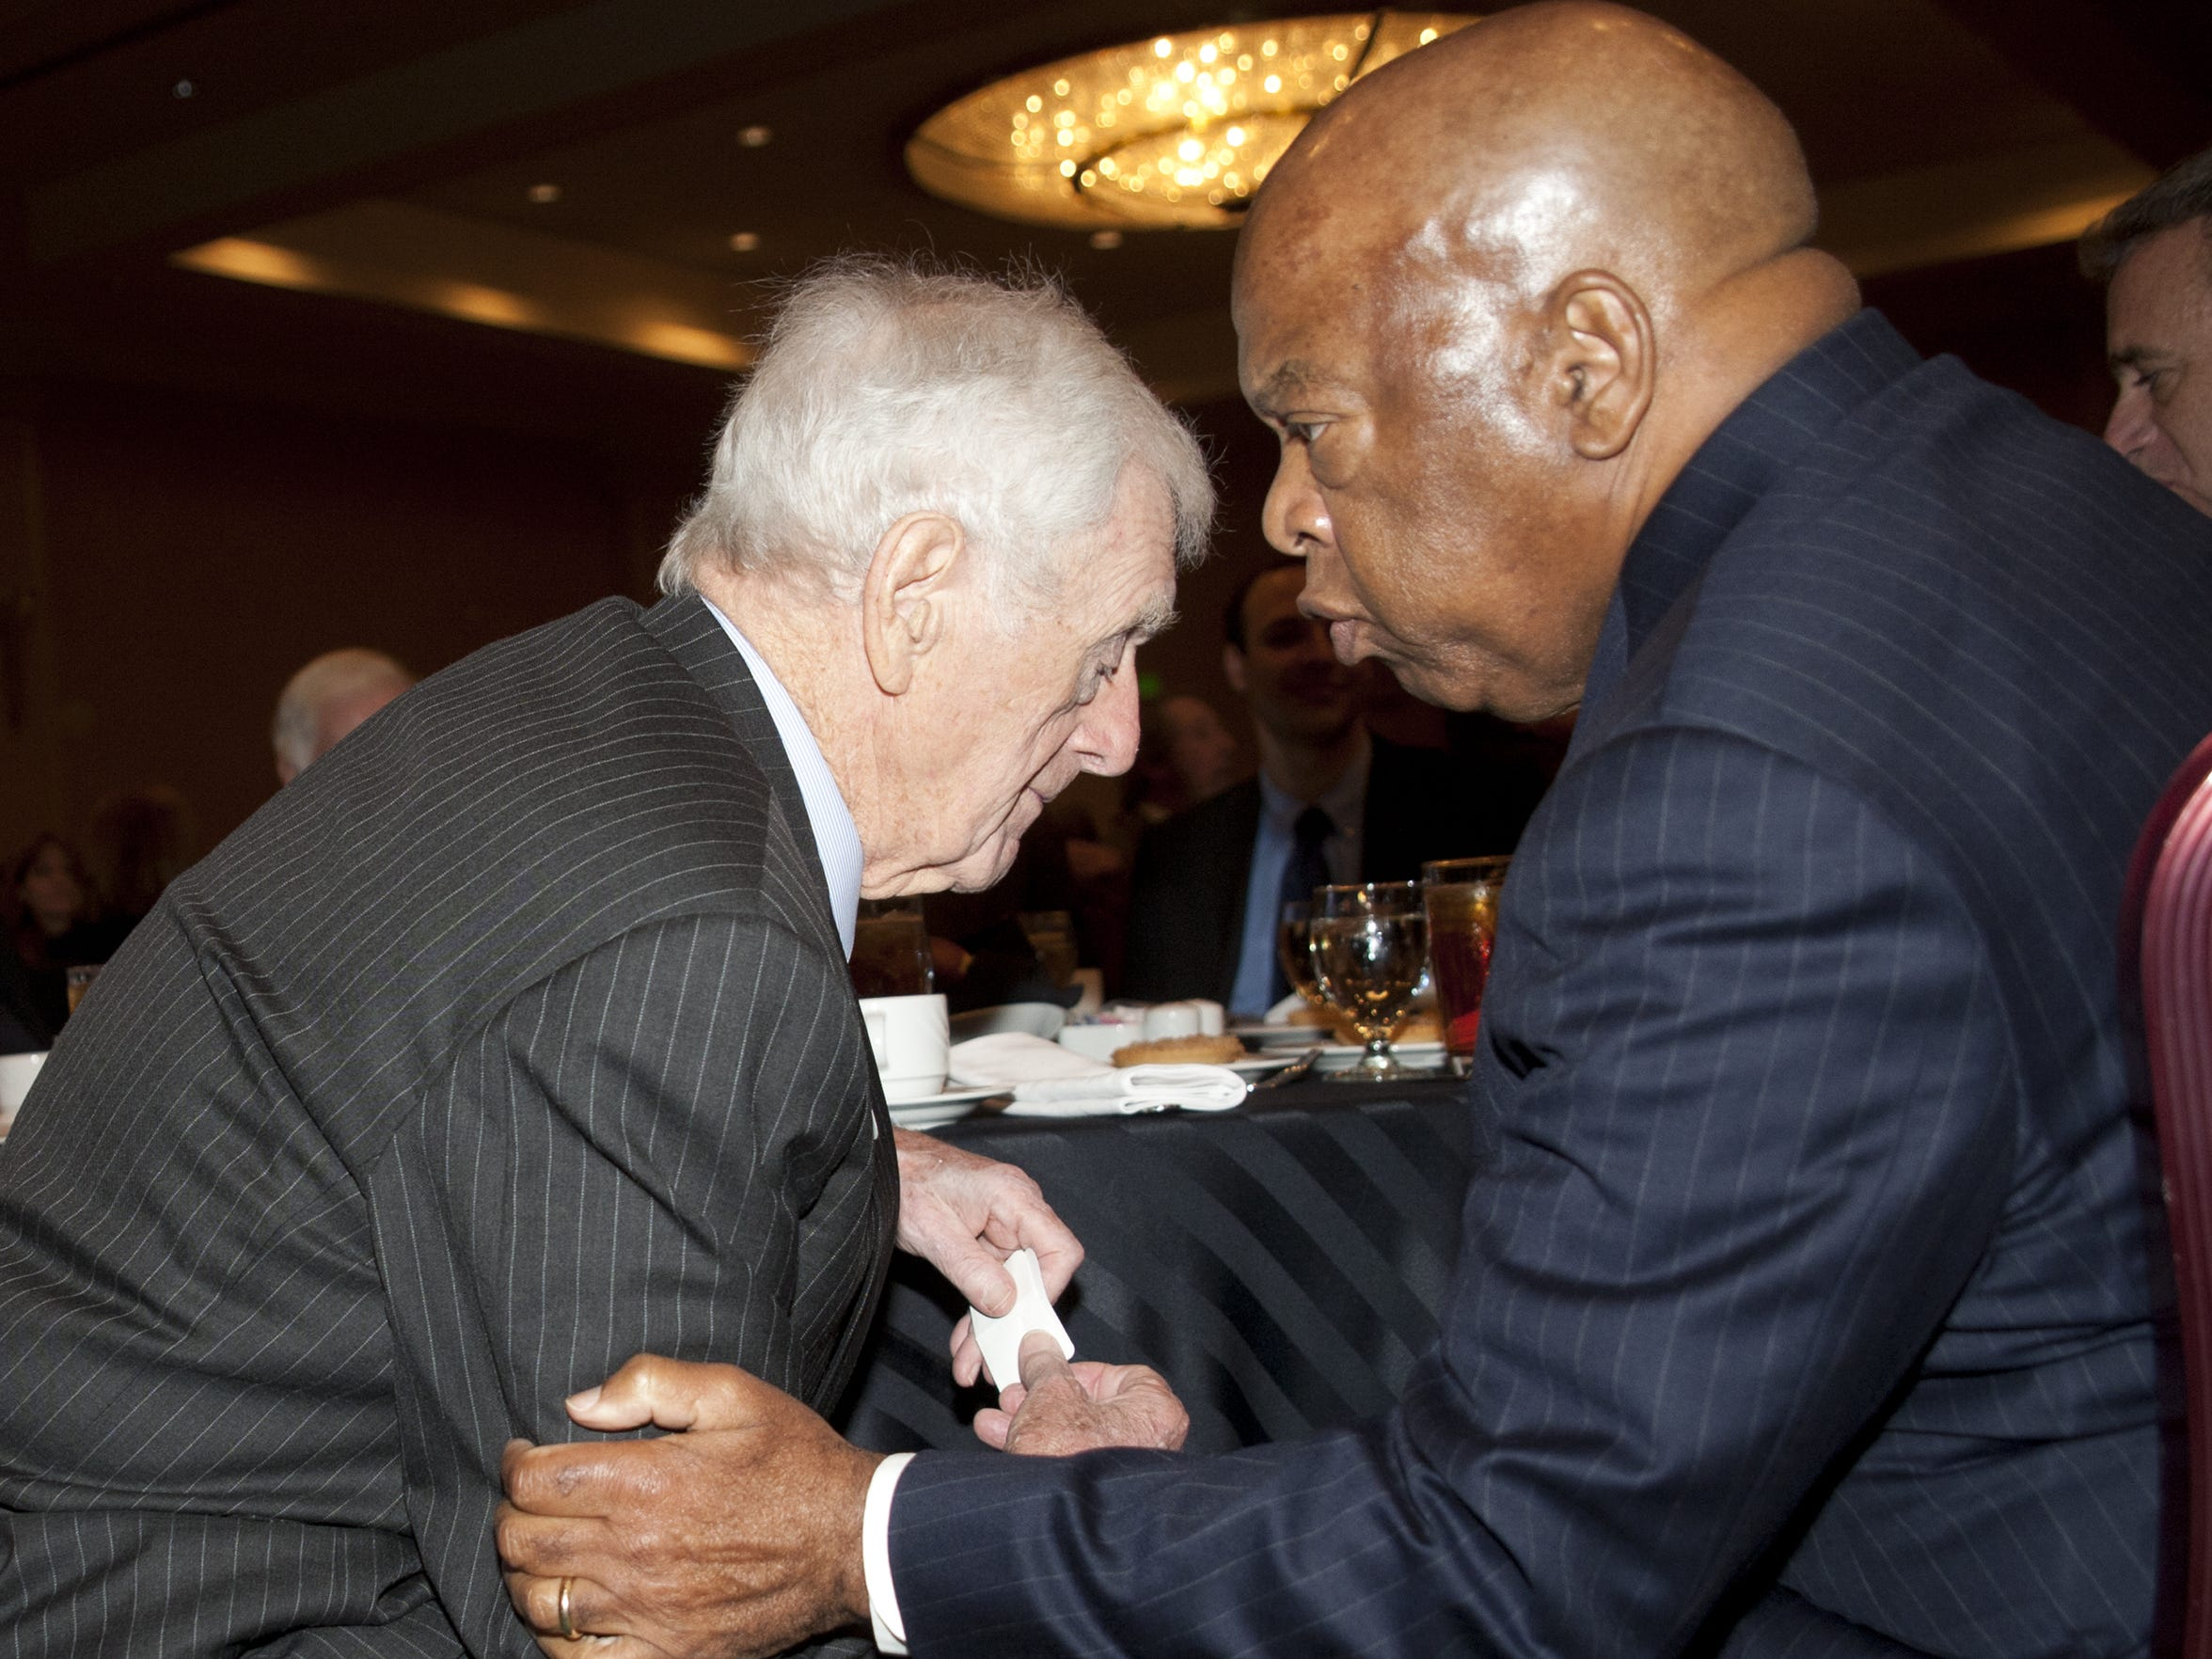 John Seigenthaler, left, and U.S. Rep. John Lewis of Georgia talk at a Community Foundation of Middle Tennessee luncheon Nov. 8, 2012, at the Renaissance Hotel. Seigenthaler was honored with the Joe Kraft Humanitarian Award.